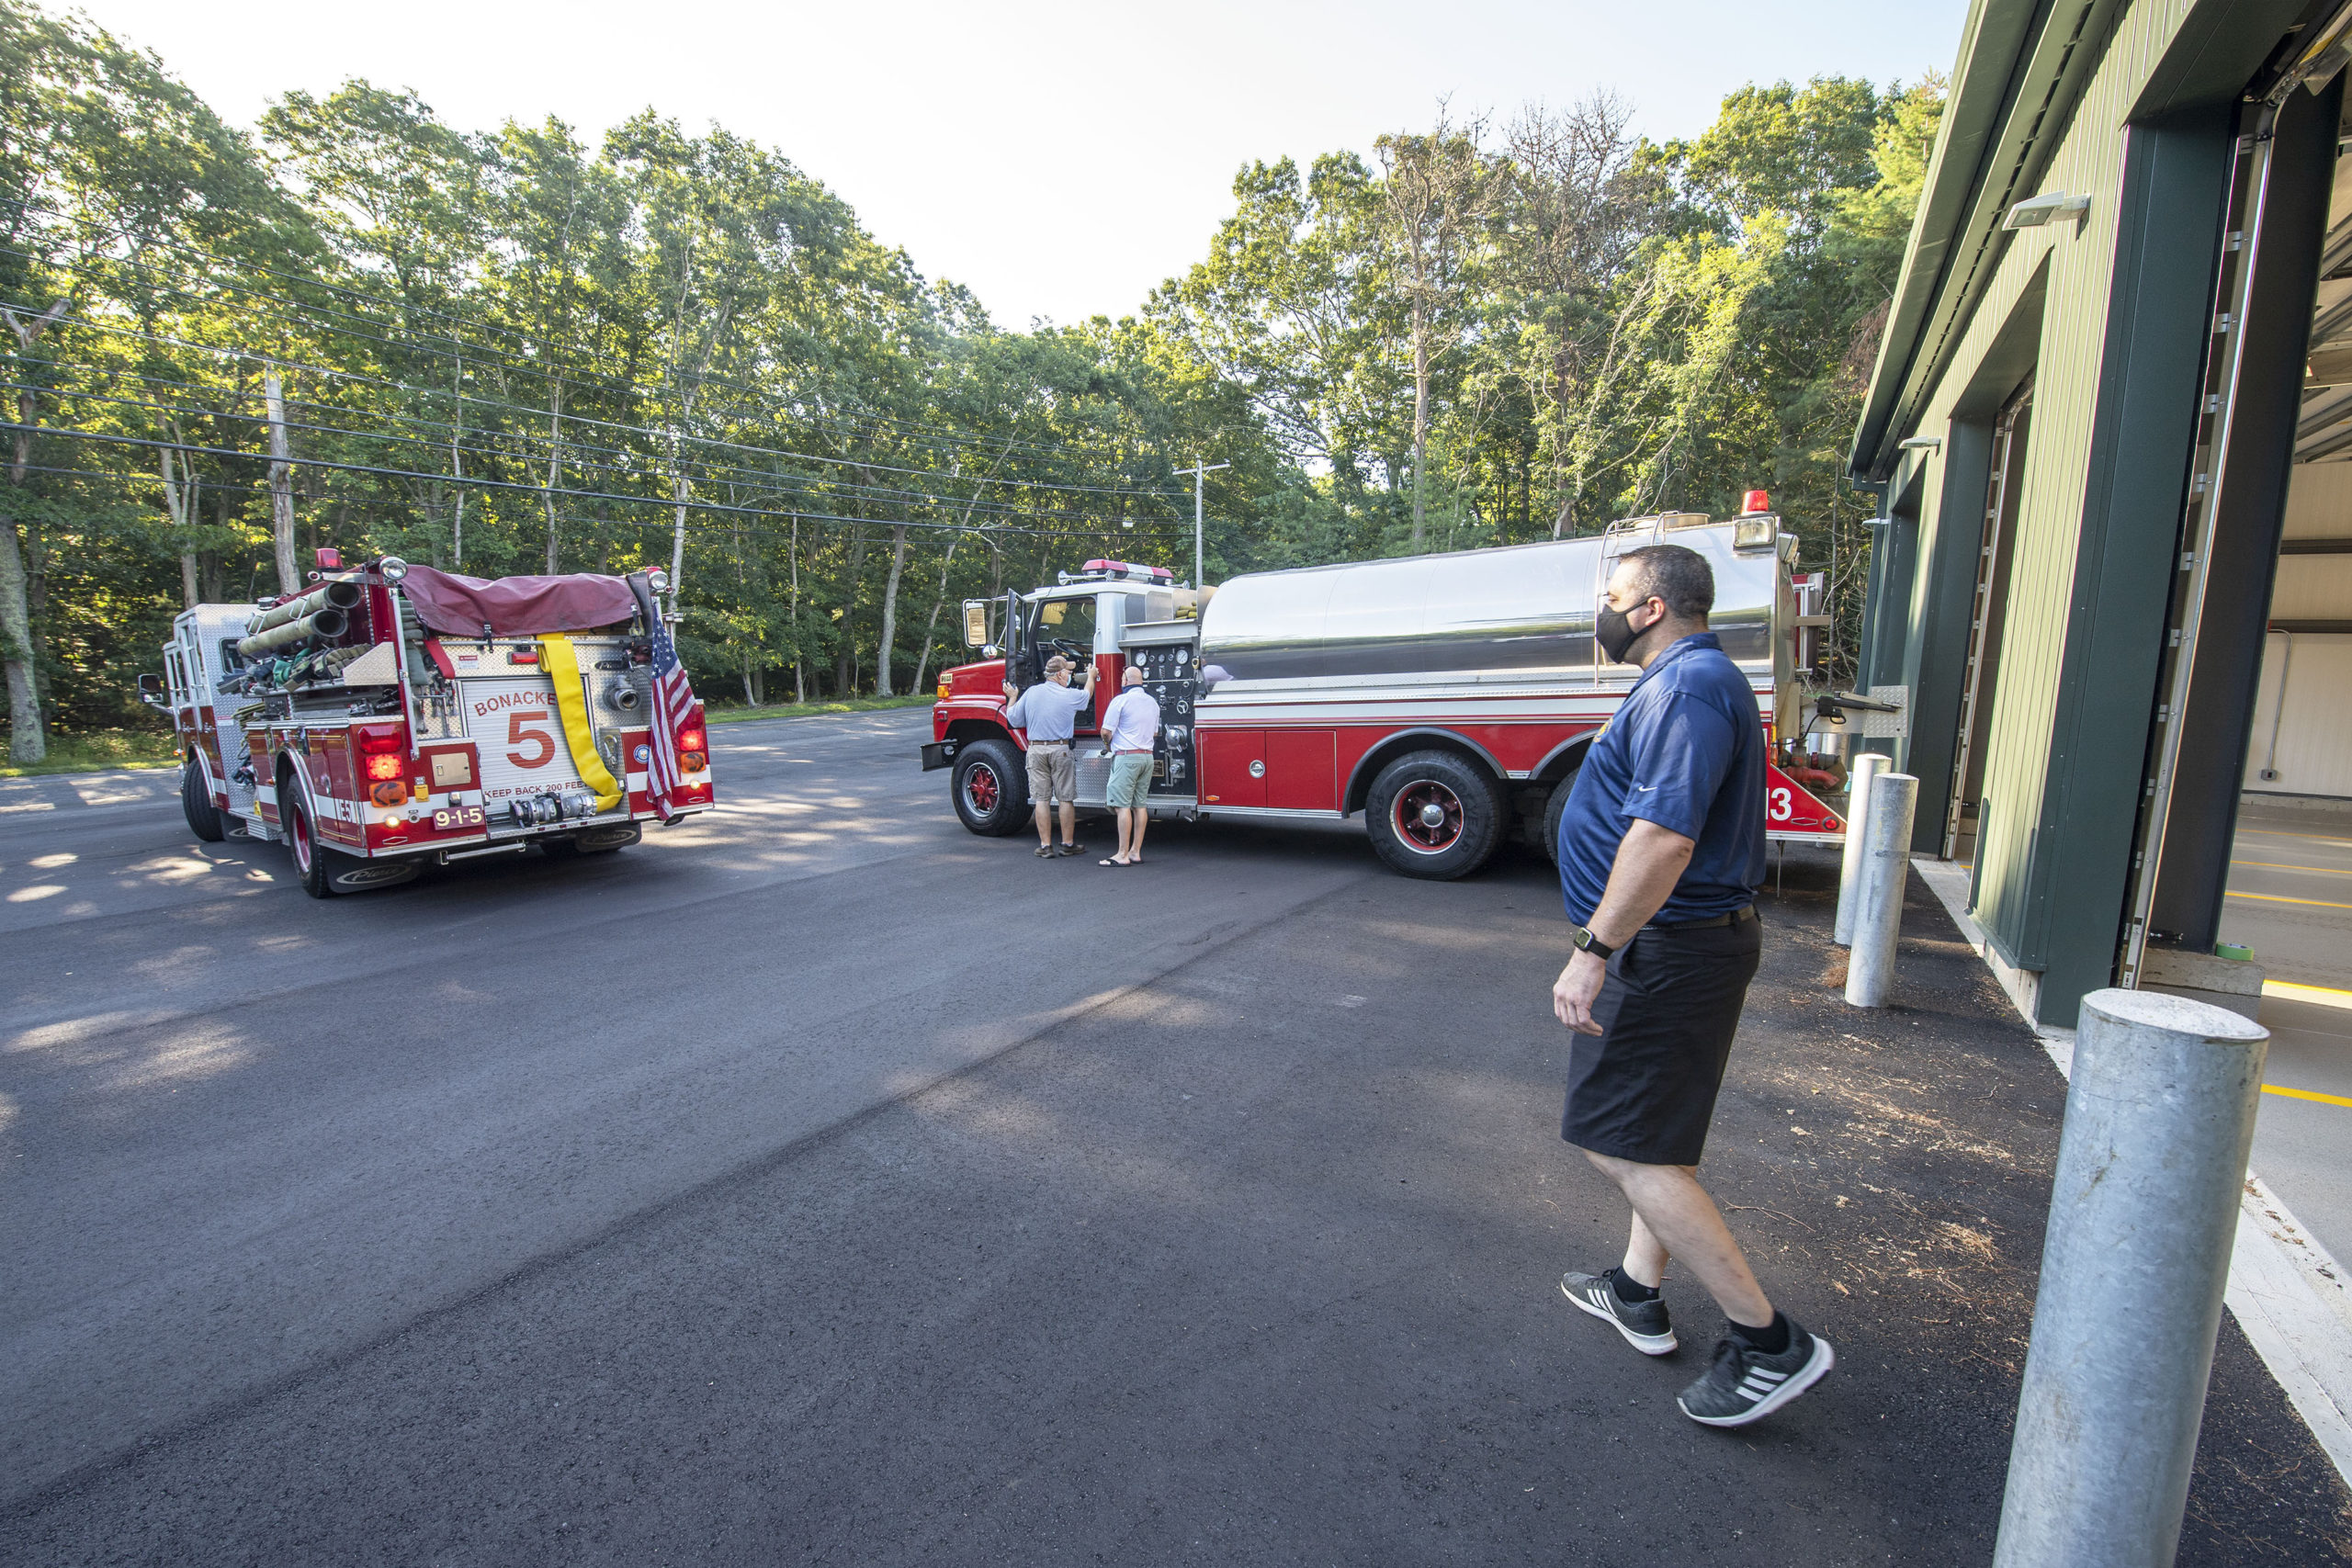 East Hampton Fire Department First Assistant Chief Duane Forrester helps guide Engine 9-1-5 into place as East Hampton Fire Department trucks 9-1-5, 9-1-10 and 9-1-13 are moved into the brand new EHFD Substation on Old Northwest Road on Saturday.   MICHAEL HELLER